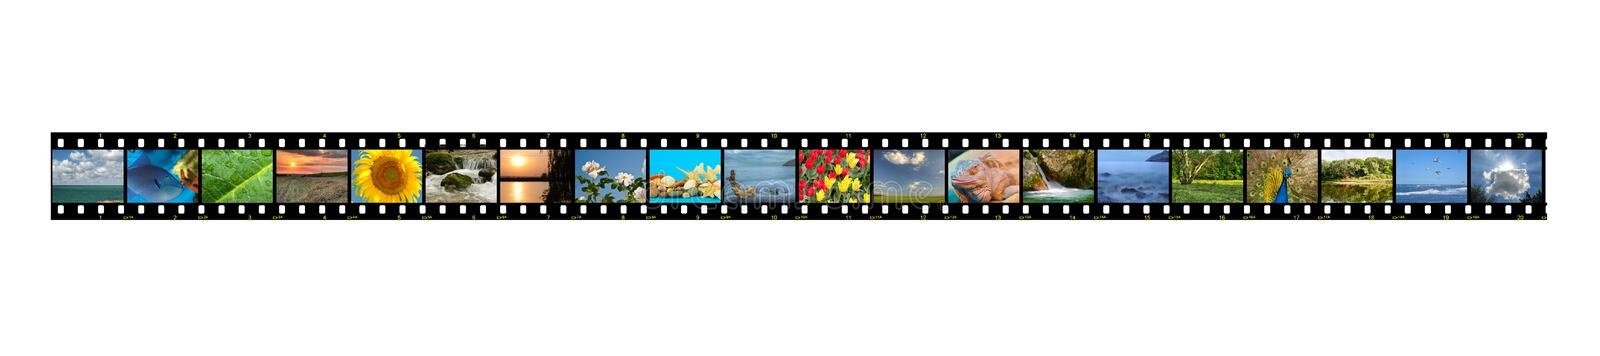 Film With Photos Stock Photography